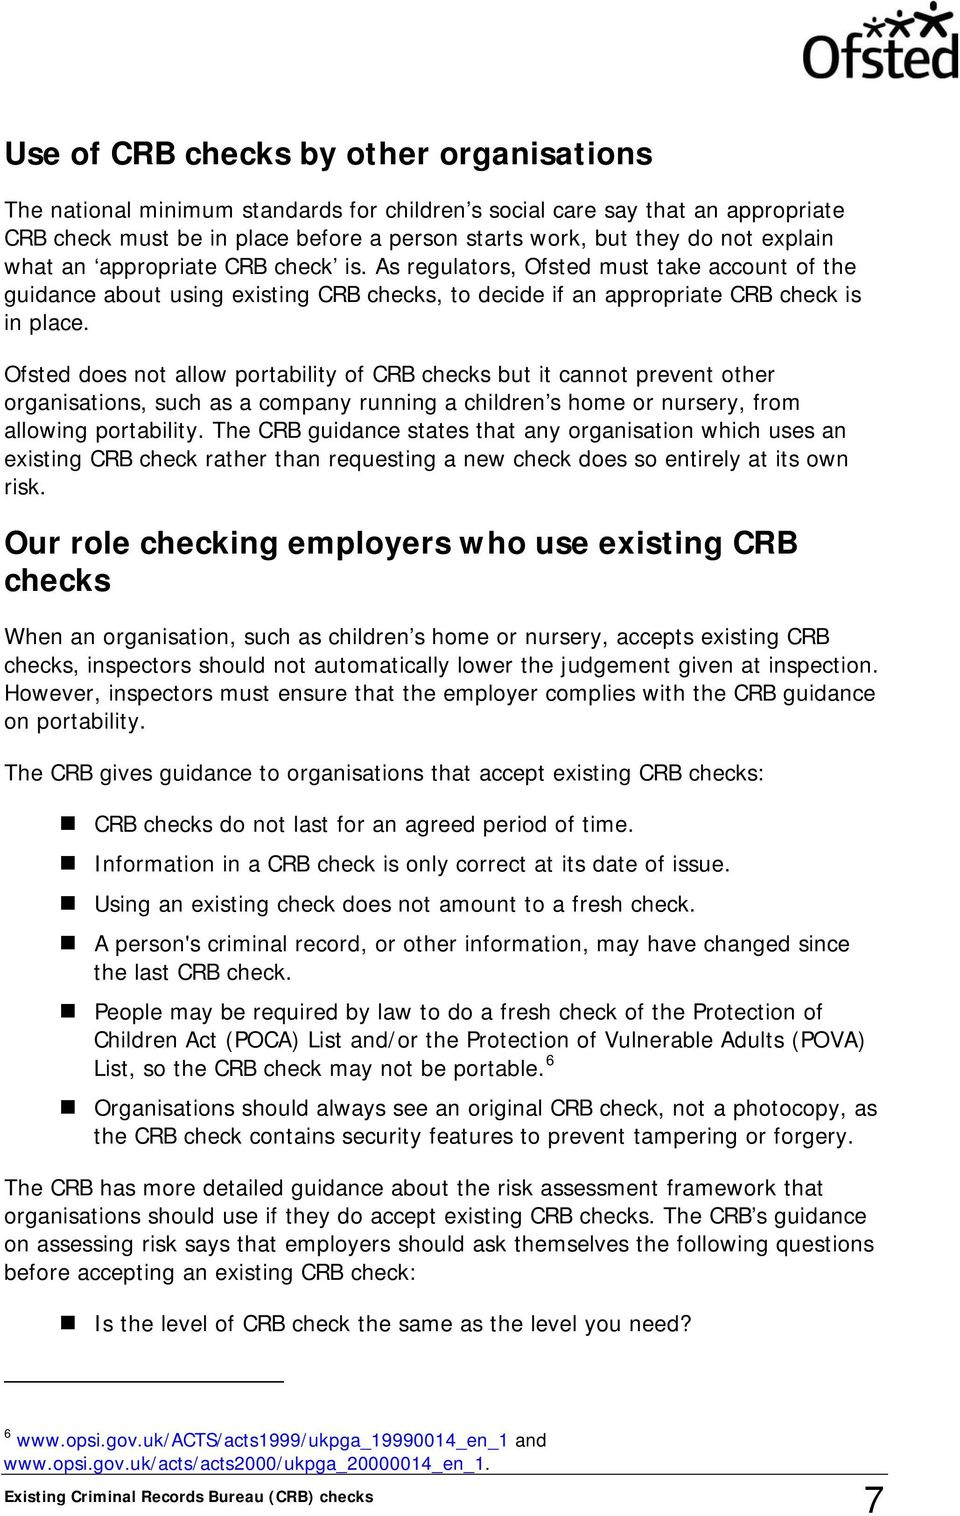 Ofsted does not allow portability of CRB checks but it cannot prevent other organisations, such as a company running a children s home or nursery, from allowing portability.